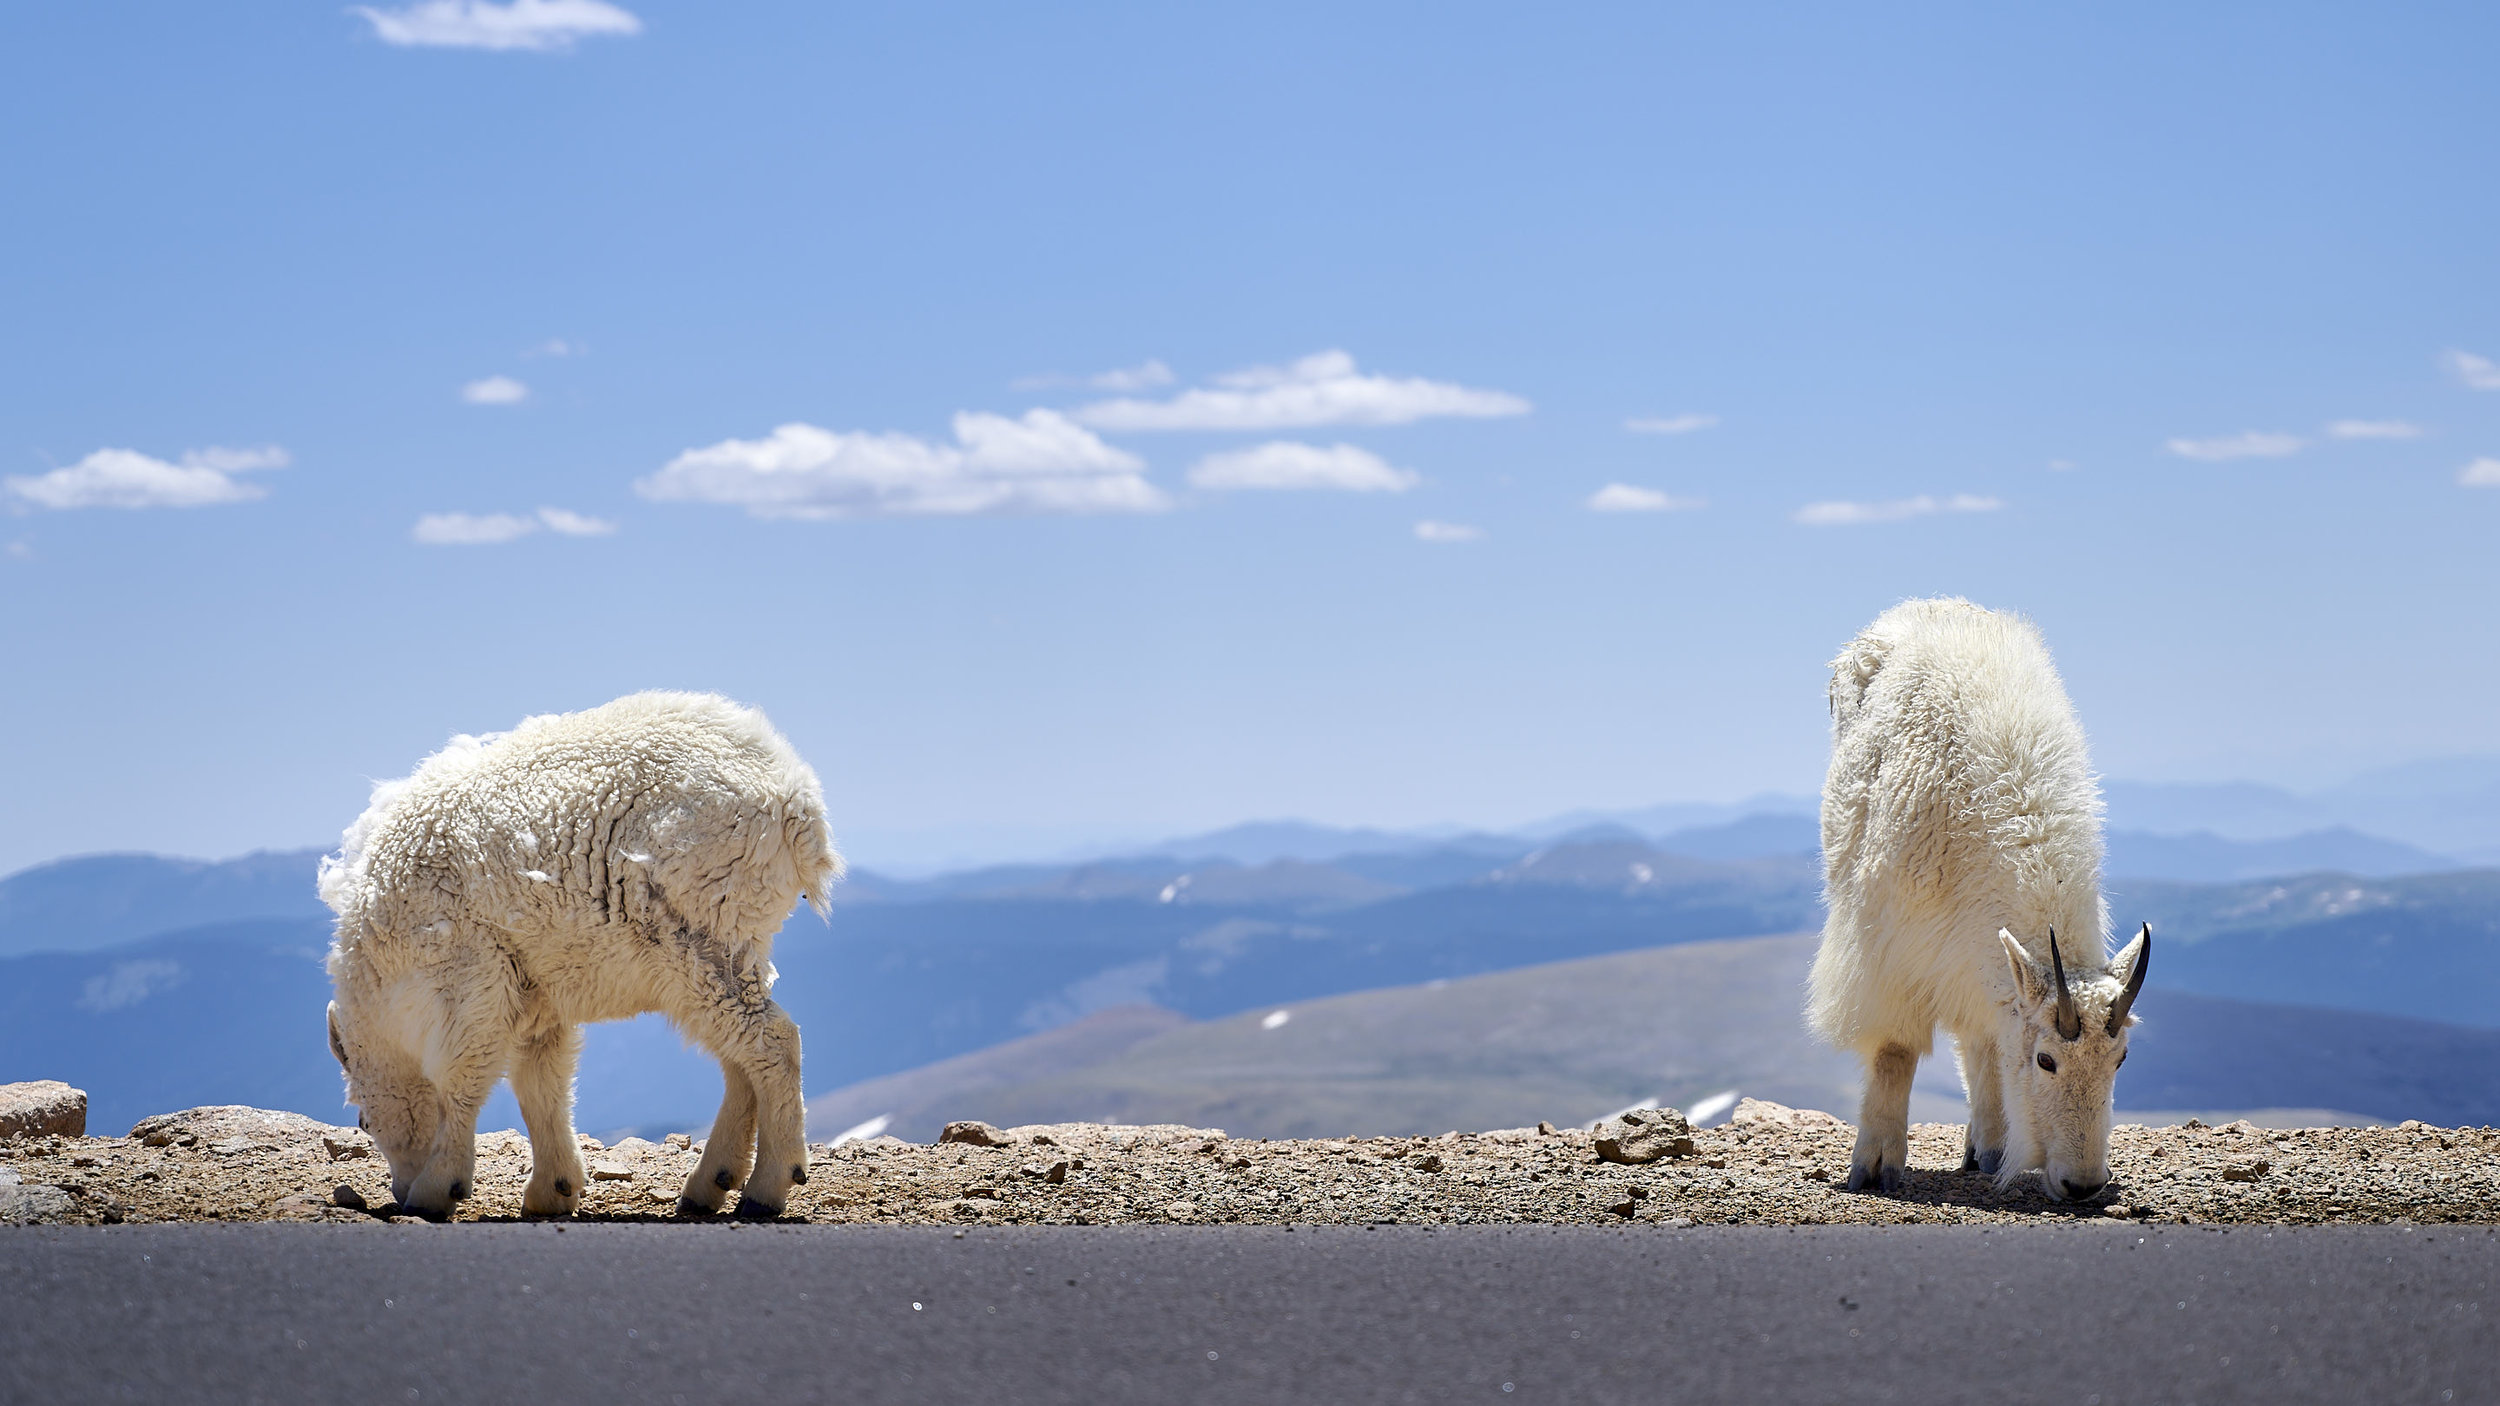 This pair of mountain goat kept us company for the entire time we were at the summit